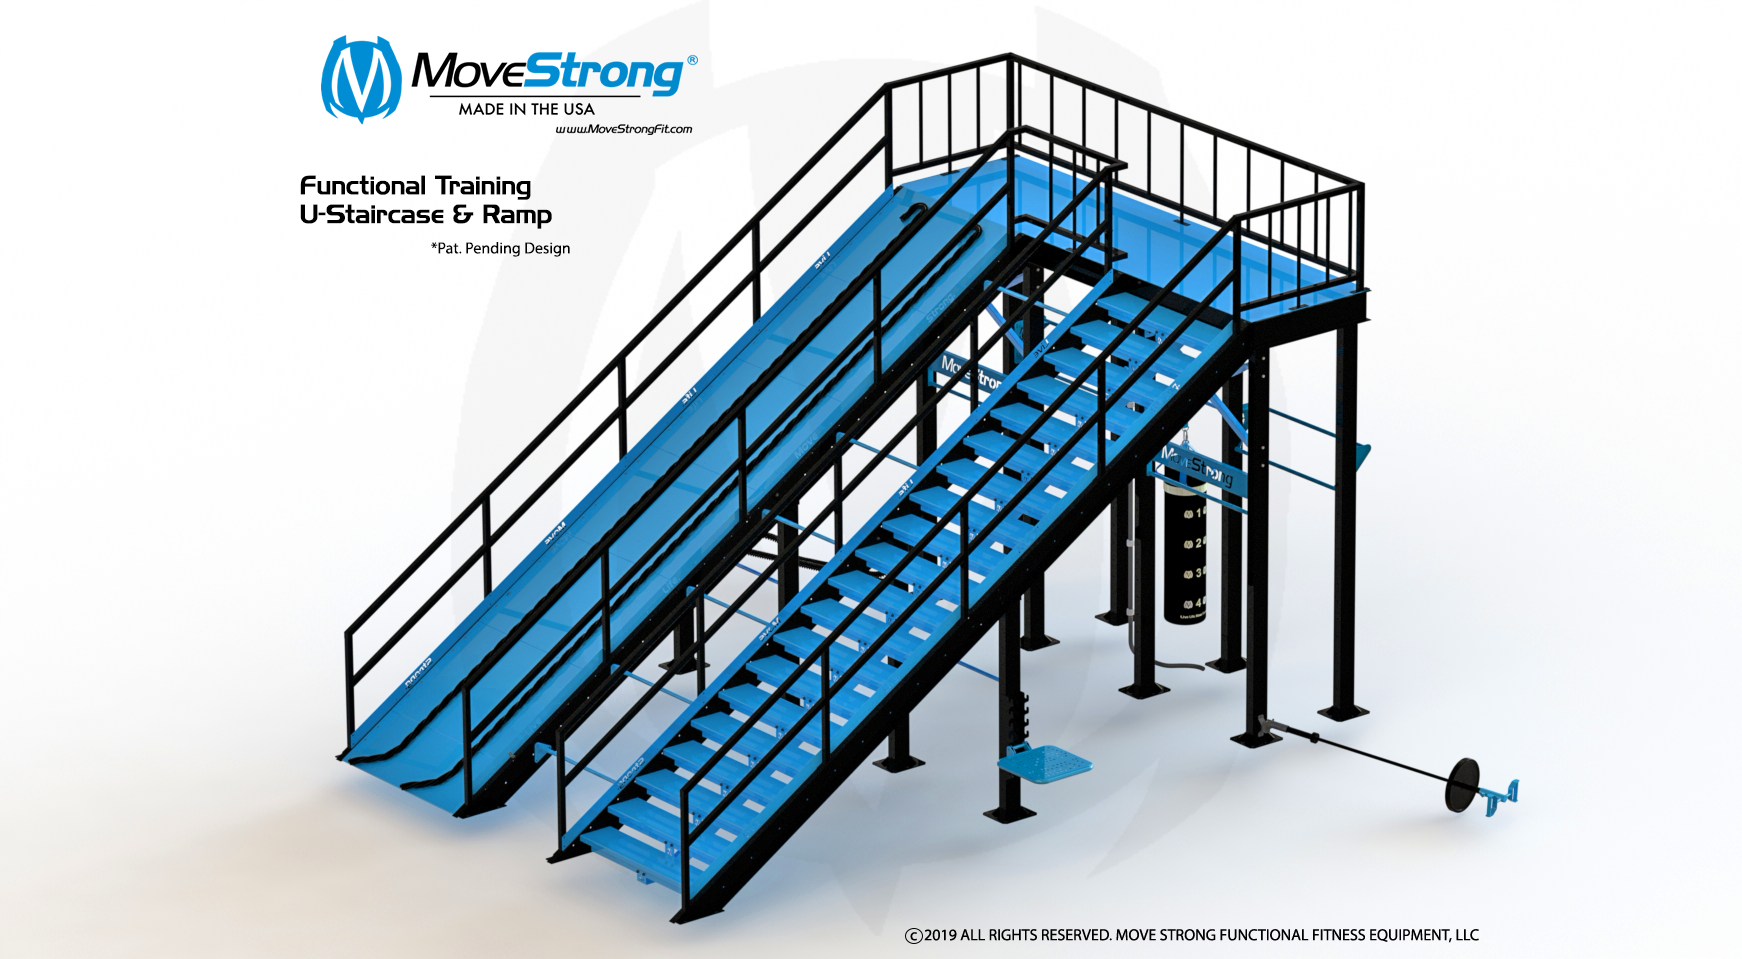 Functional Training U-Staircase and Ramp